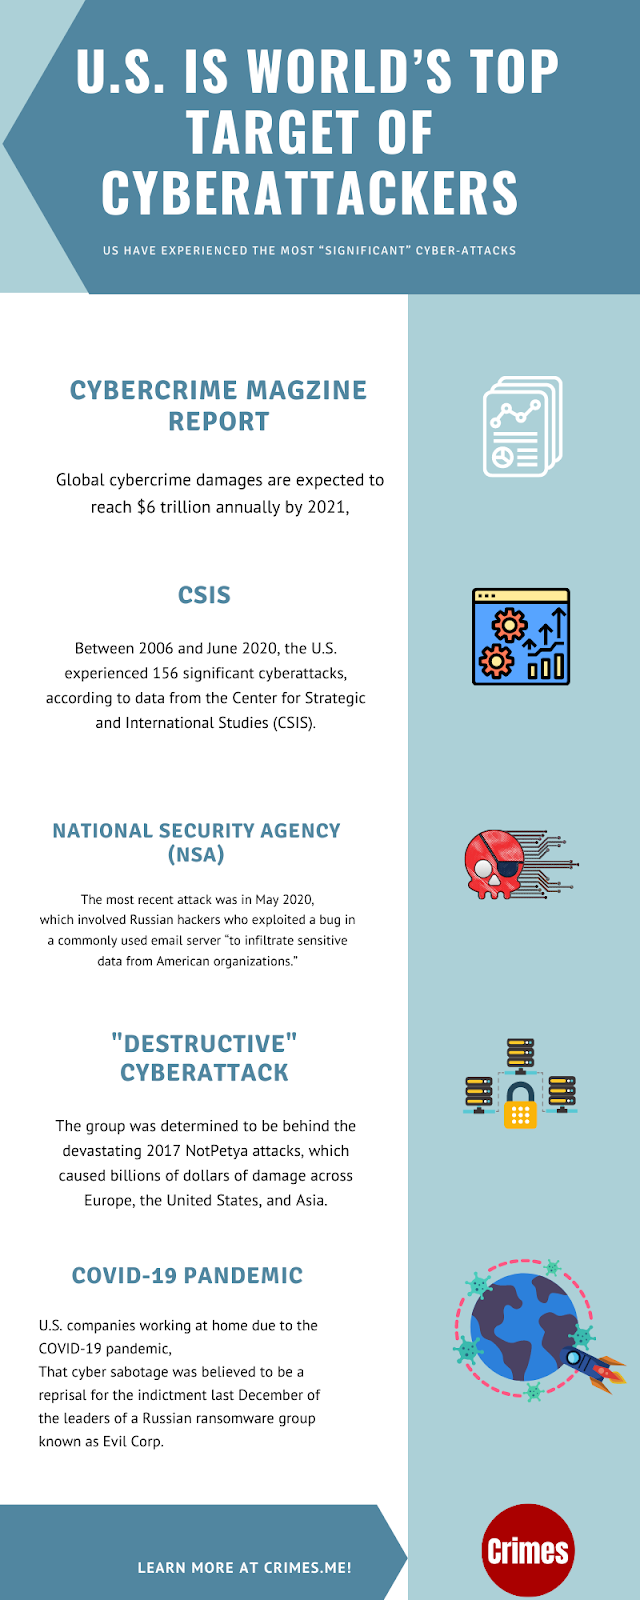 US World Top Target of Cyber Attacks